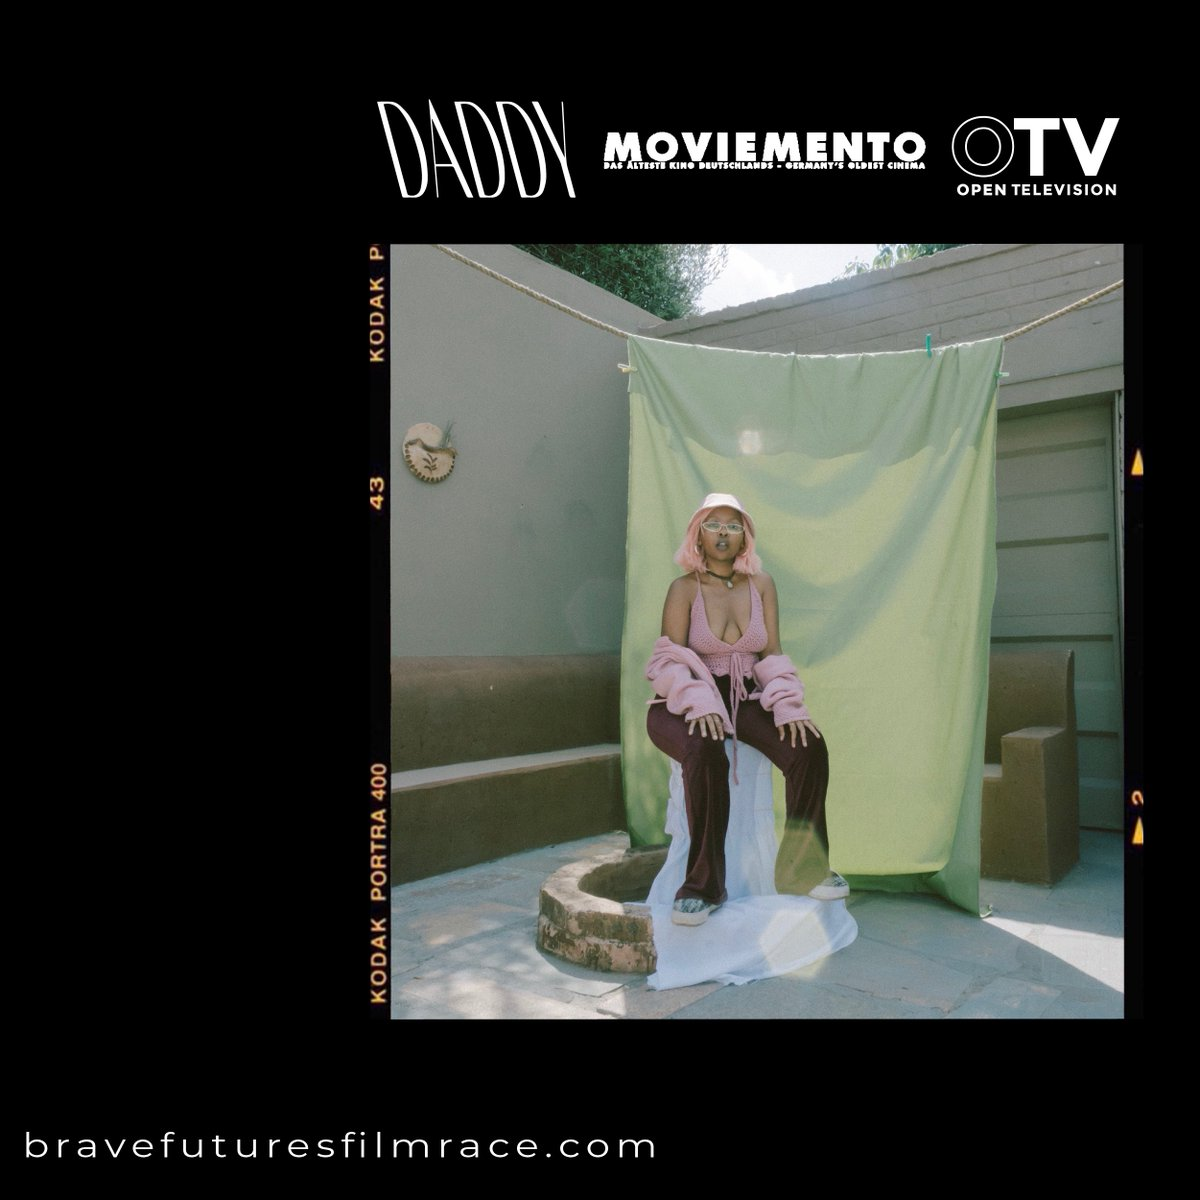 #BraveFuturesFilmRace lands in Berlin February 25+26. Join OTV's Exec Director @elijaa_  and @daddymagberlin Co-Founder @kemifatoba at Germany's oldest cinema @kinomoviemento for a daring program of intersectional shorts. Contest winners will be announced! https://bit.ly/32ffPIVpic.twitter.com/4cXIgwbVT8